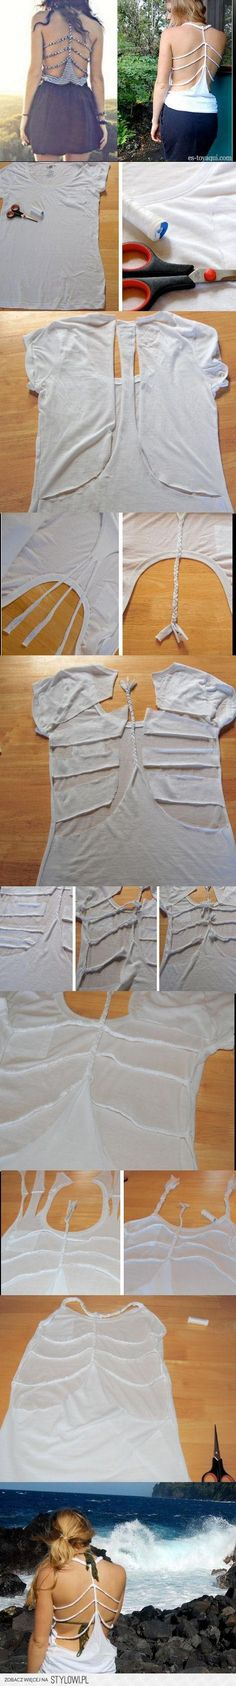 DIY Clothes Refashion: DIY This would make a cool workout shirt